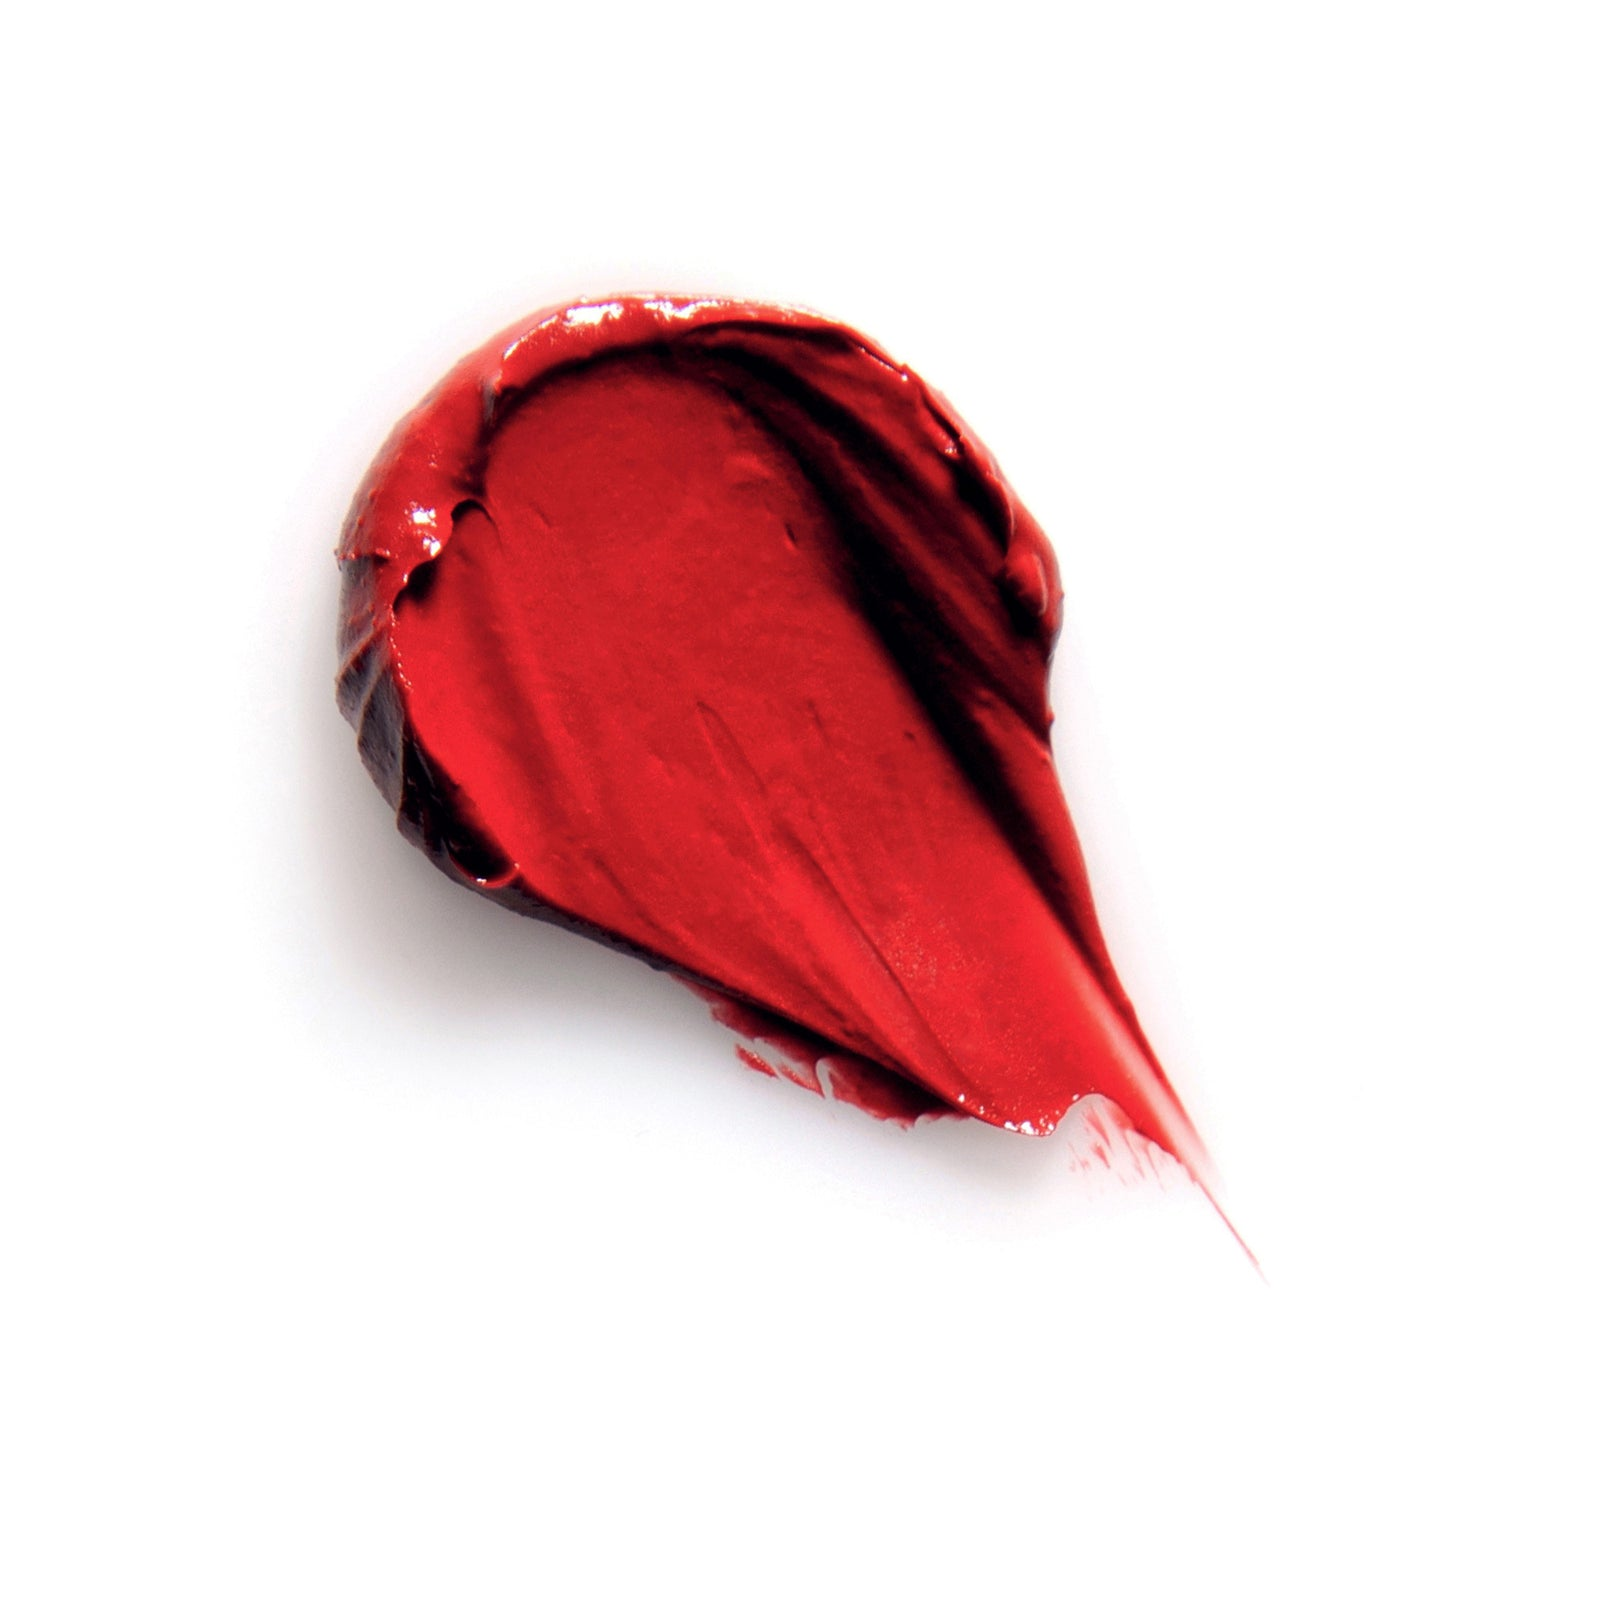 Love-Ache red natural lipstick cruelty free makeup swatch